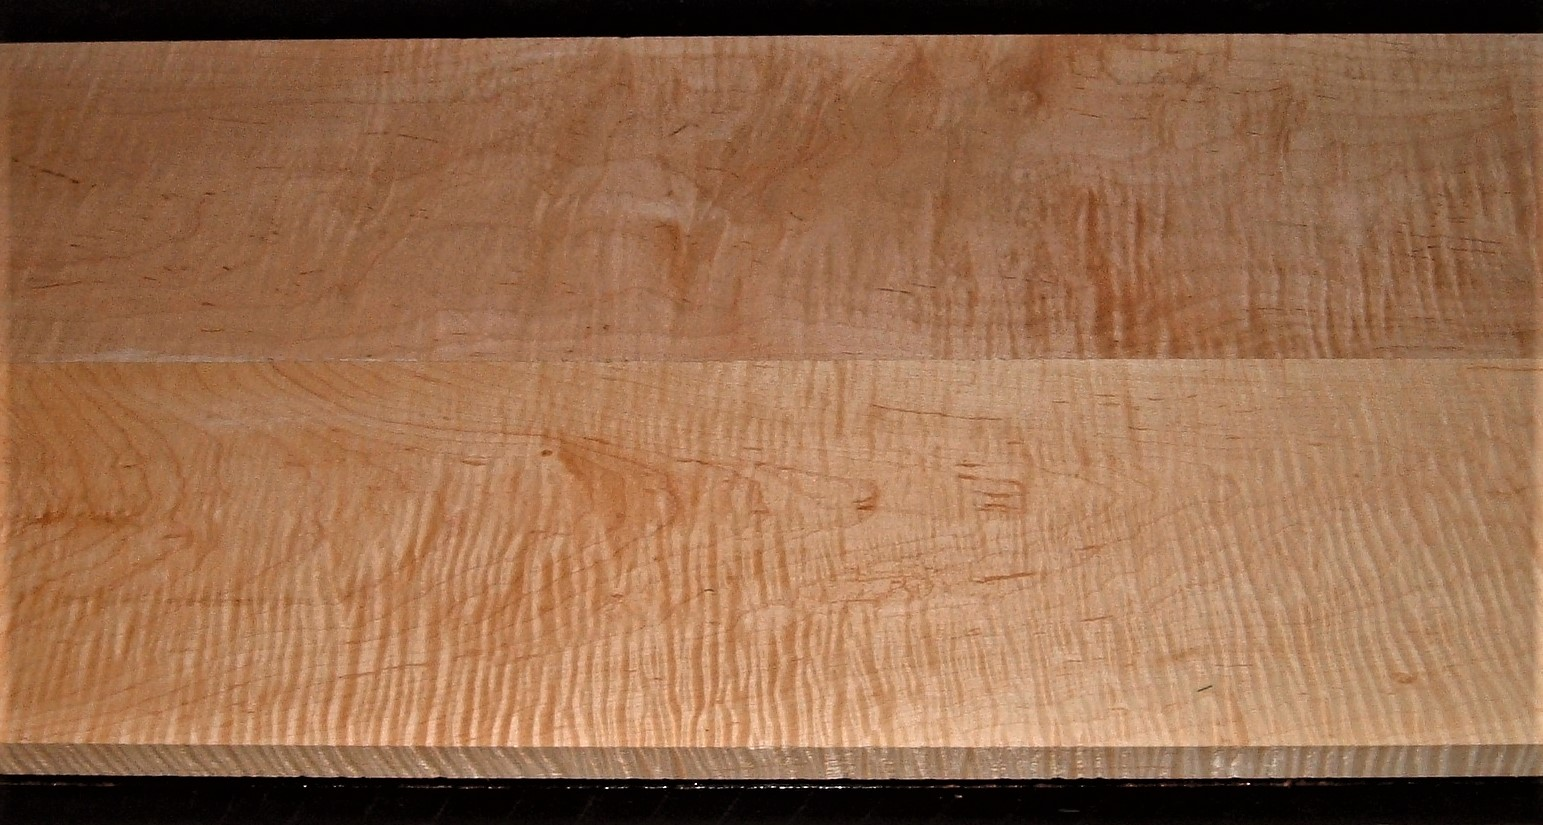 HM2010-180JJ, 2 bd, 7/8x7x45, 13/16x7-7/8x45, Curly Tiger Hard Maple